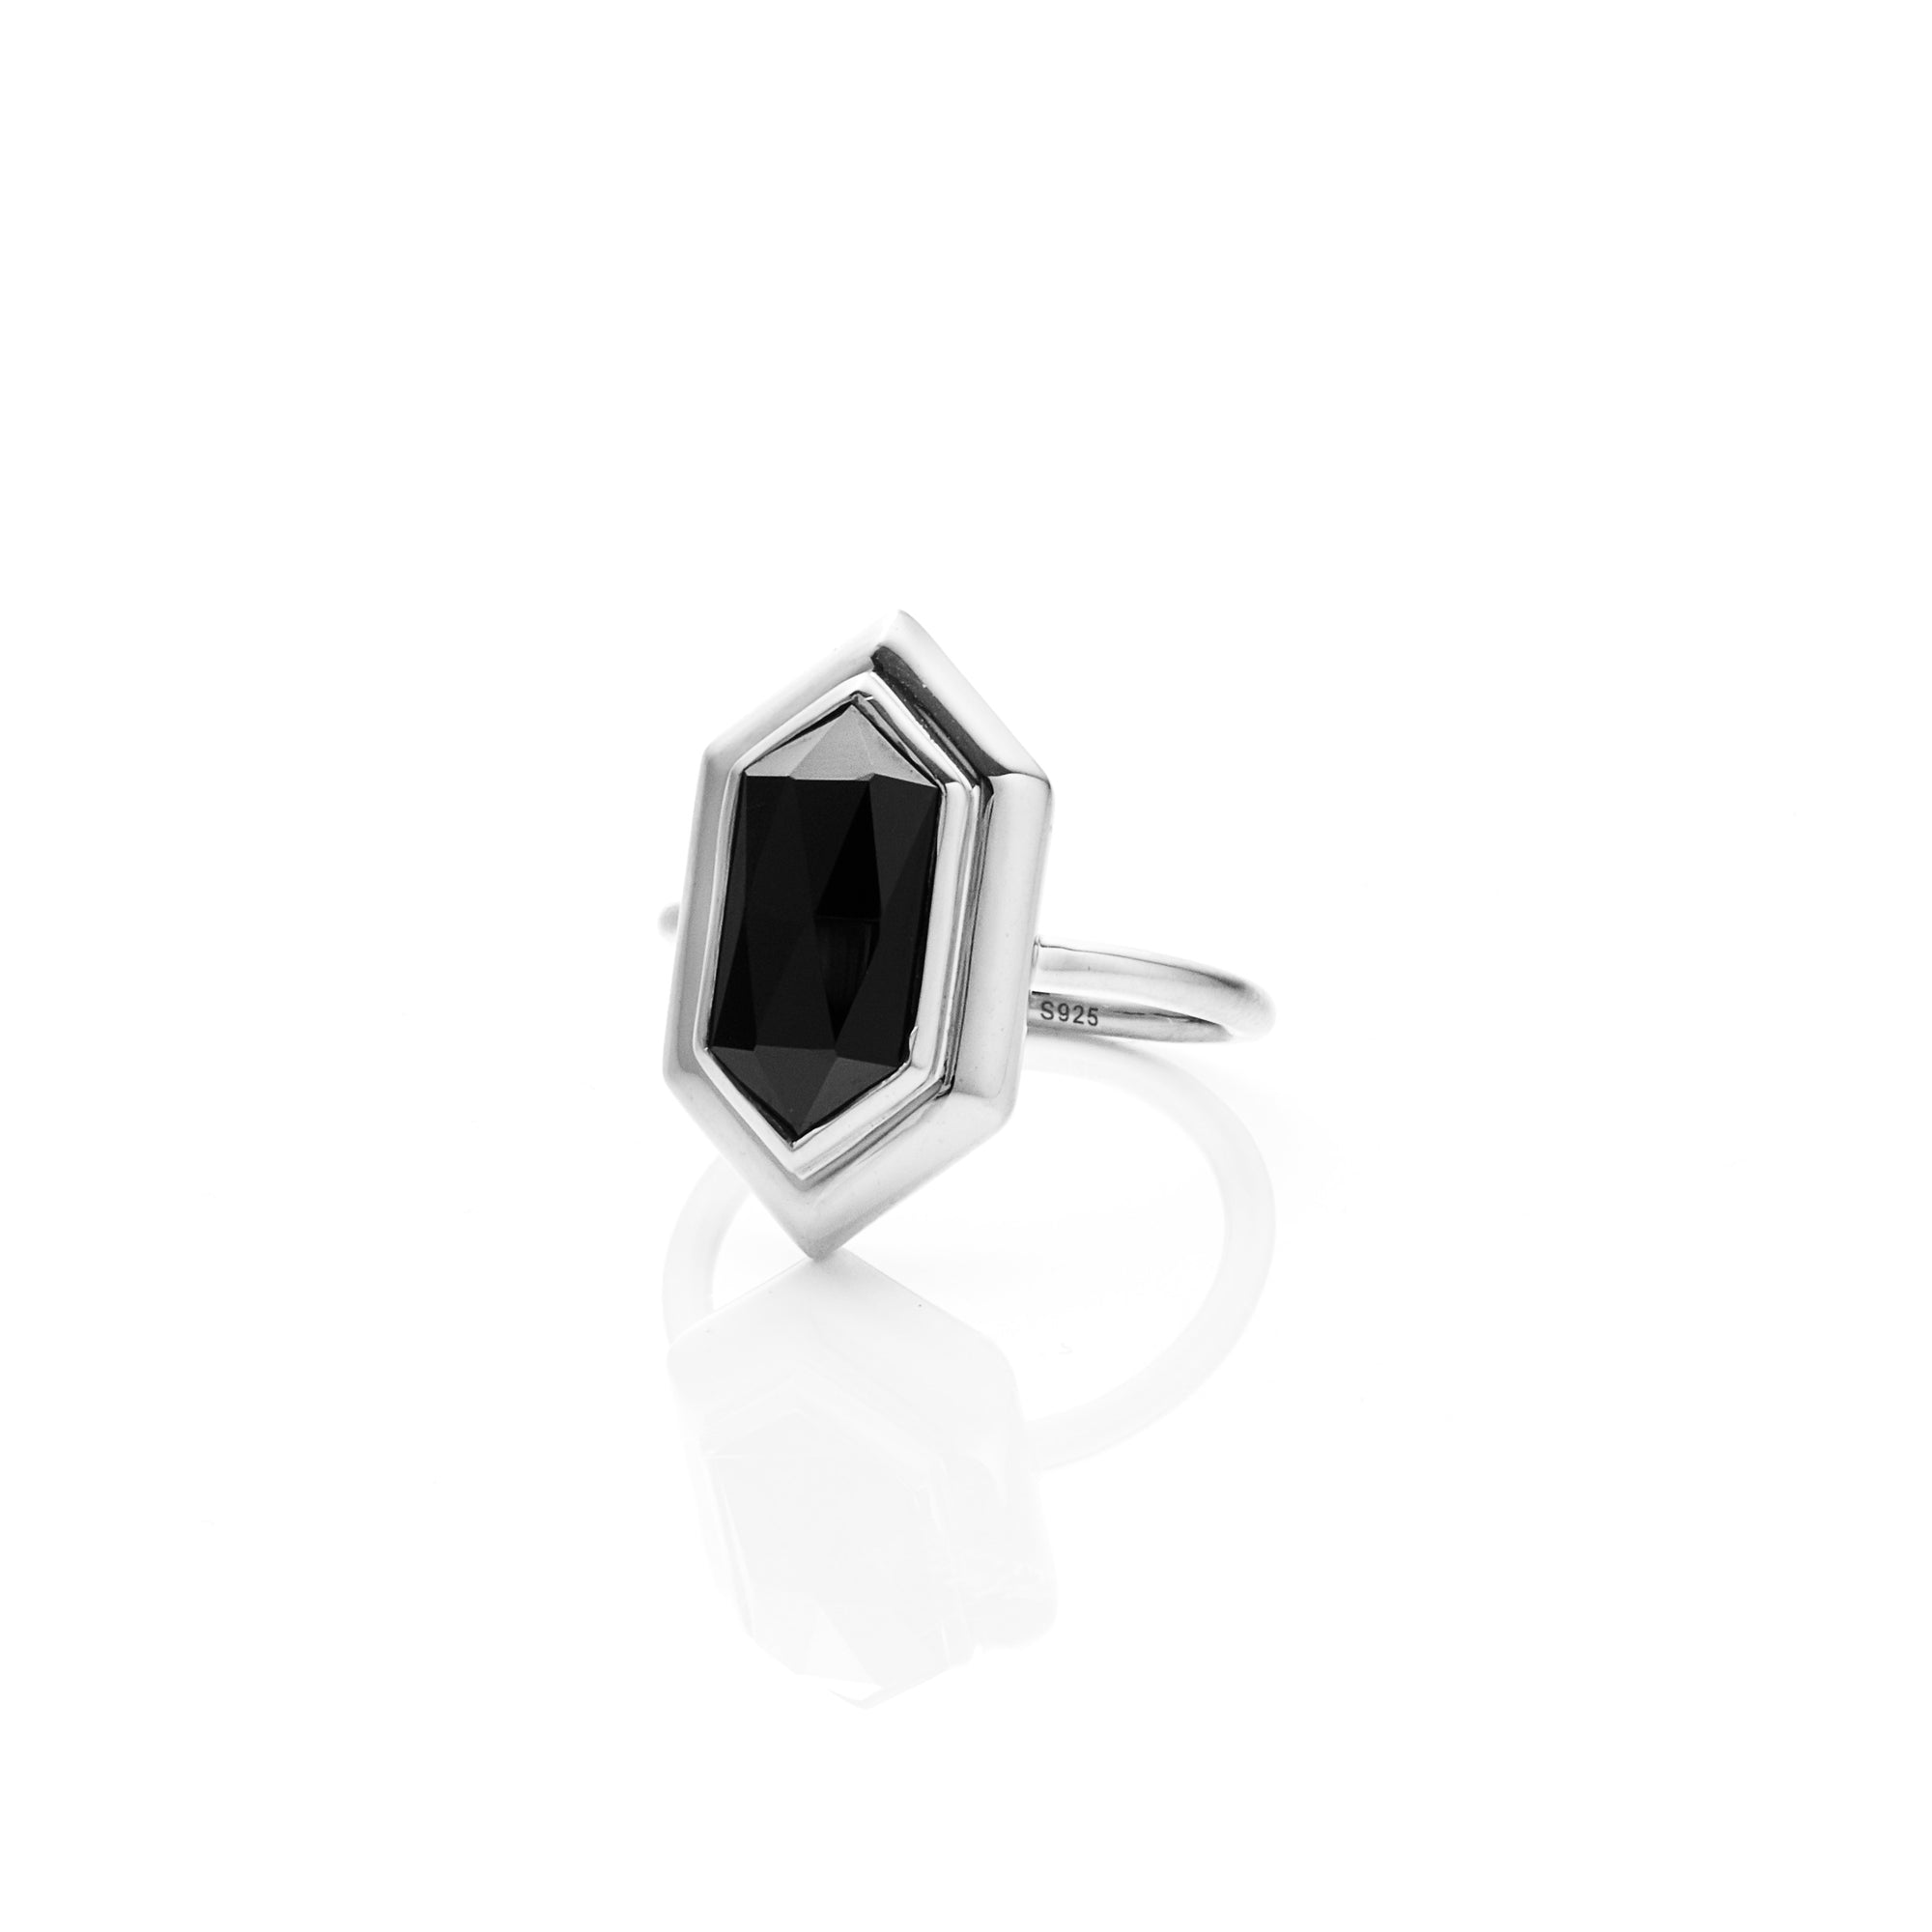 Silk&Steel Jewellery Haveli Black Spinel and Silver Ring from Haveli Collection